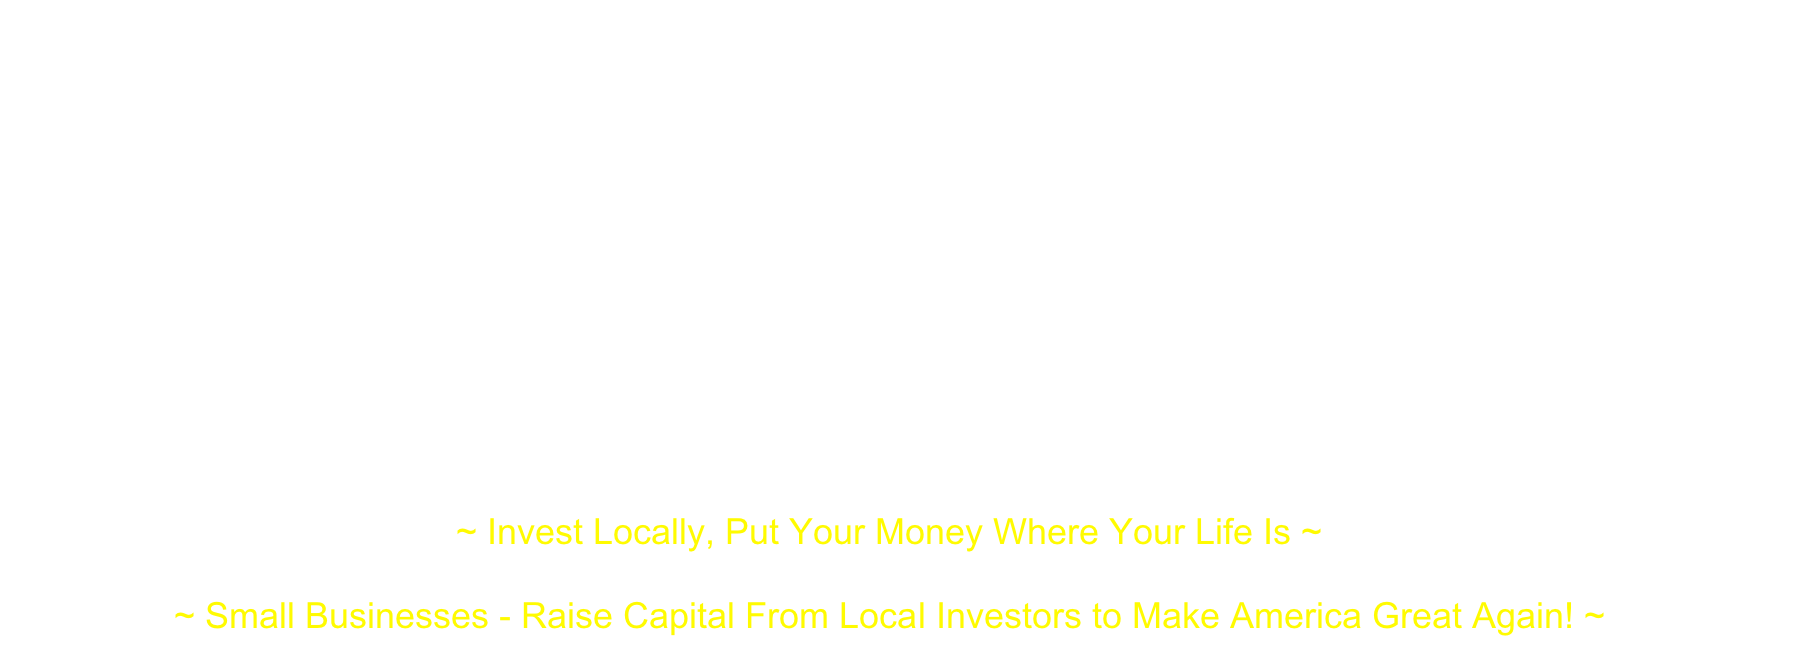 "Turned off by what they see as the failures of traditional finance, a new breed of investor is turning to small investment clubs and networks through which they can make loans, equity investments or a little of both in ""Local"" (city, town, county or a defined primary statistical area) nearby businesses…This is a way for both sophisticated and small (non-accredited) investors to put their money in Main Street businesses and help them grow ~ ""The Local Small Business Investing Revolution"" - www.cnbc.com/2016/02/16/reaping-profits-in-the-local-investing-revolution-in-us.html  